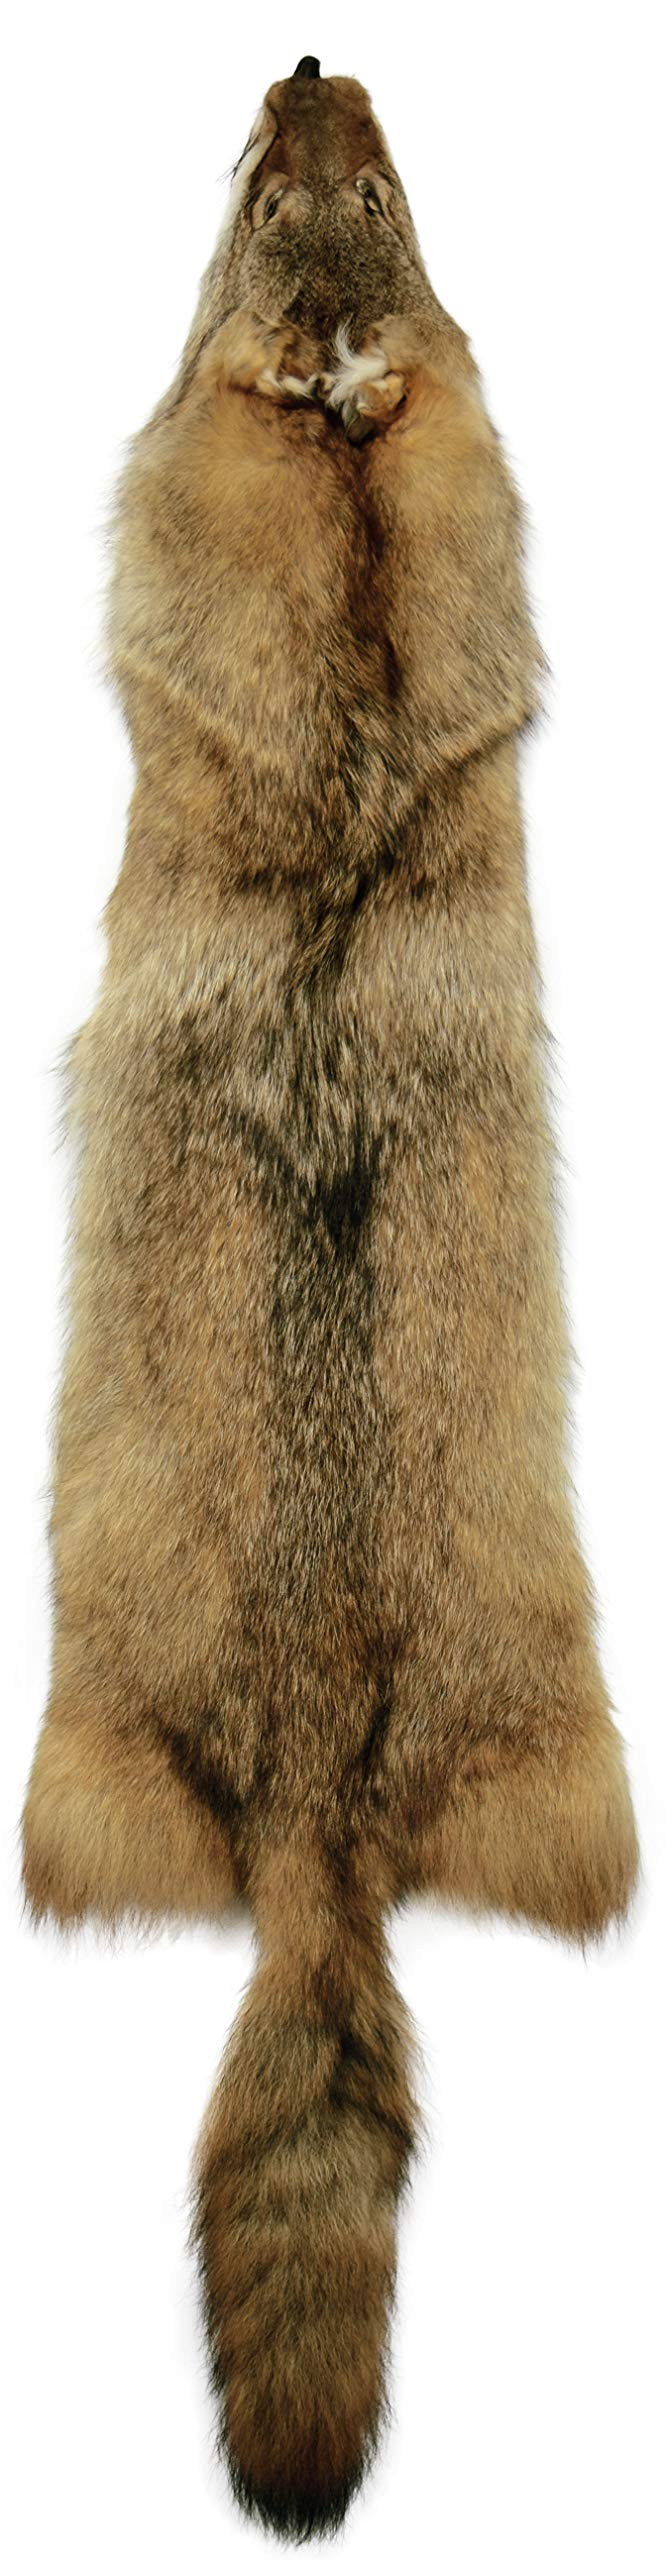 Professionally Tanned Coyote Fur Pelt with Tail & Feet 55'' - 1 Pelt